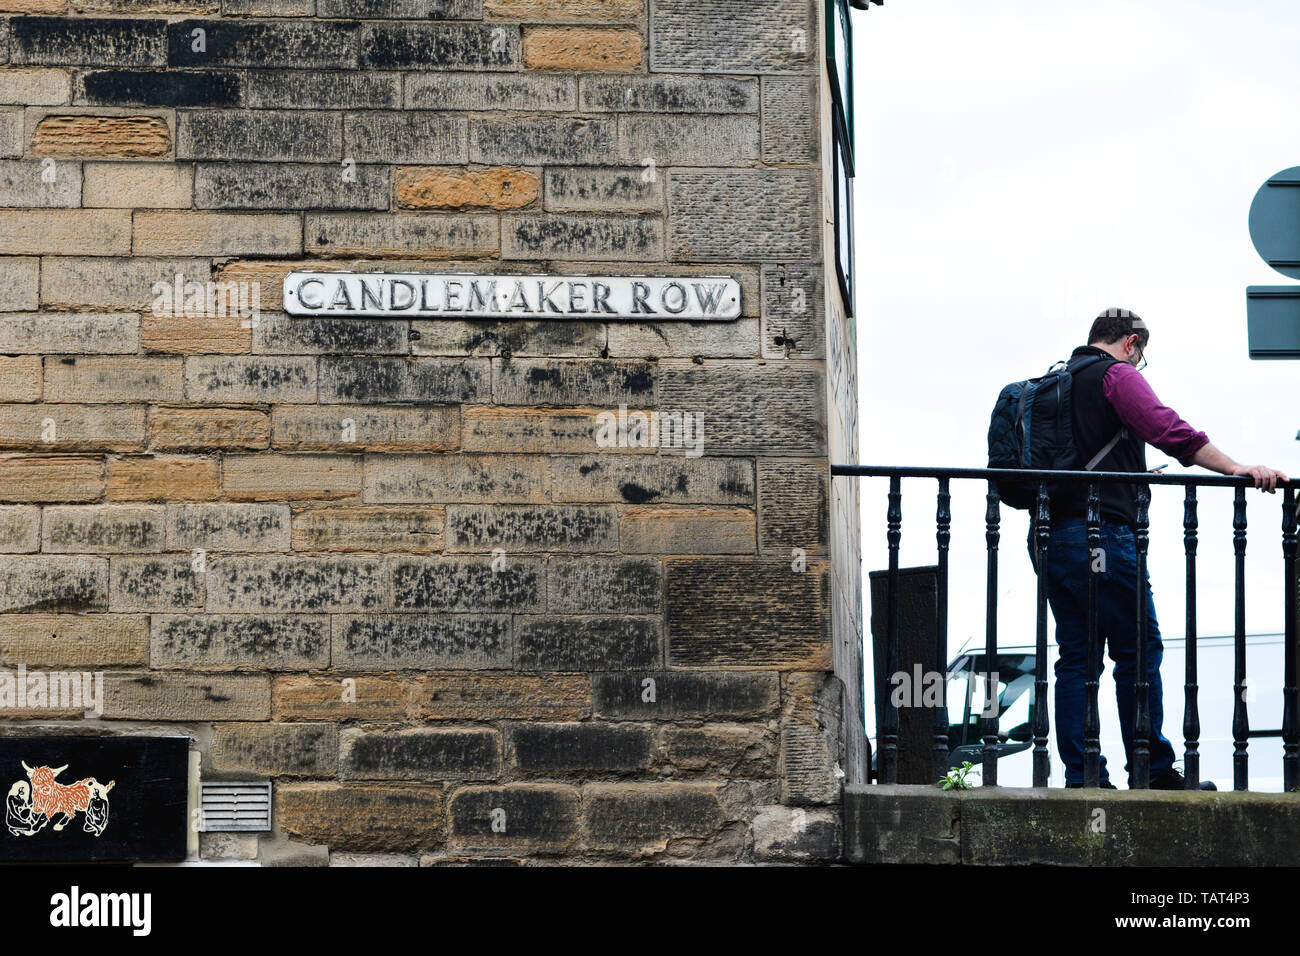 Everyday life in the city of Edinburgh is the capital of Scotland an old city in the heart of Scotland it has many tourist attractions Stock Photo